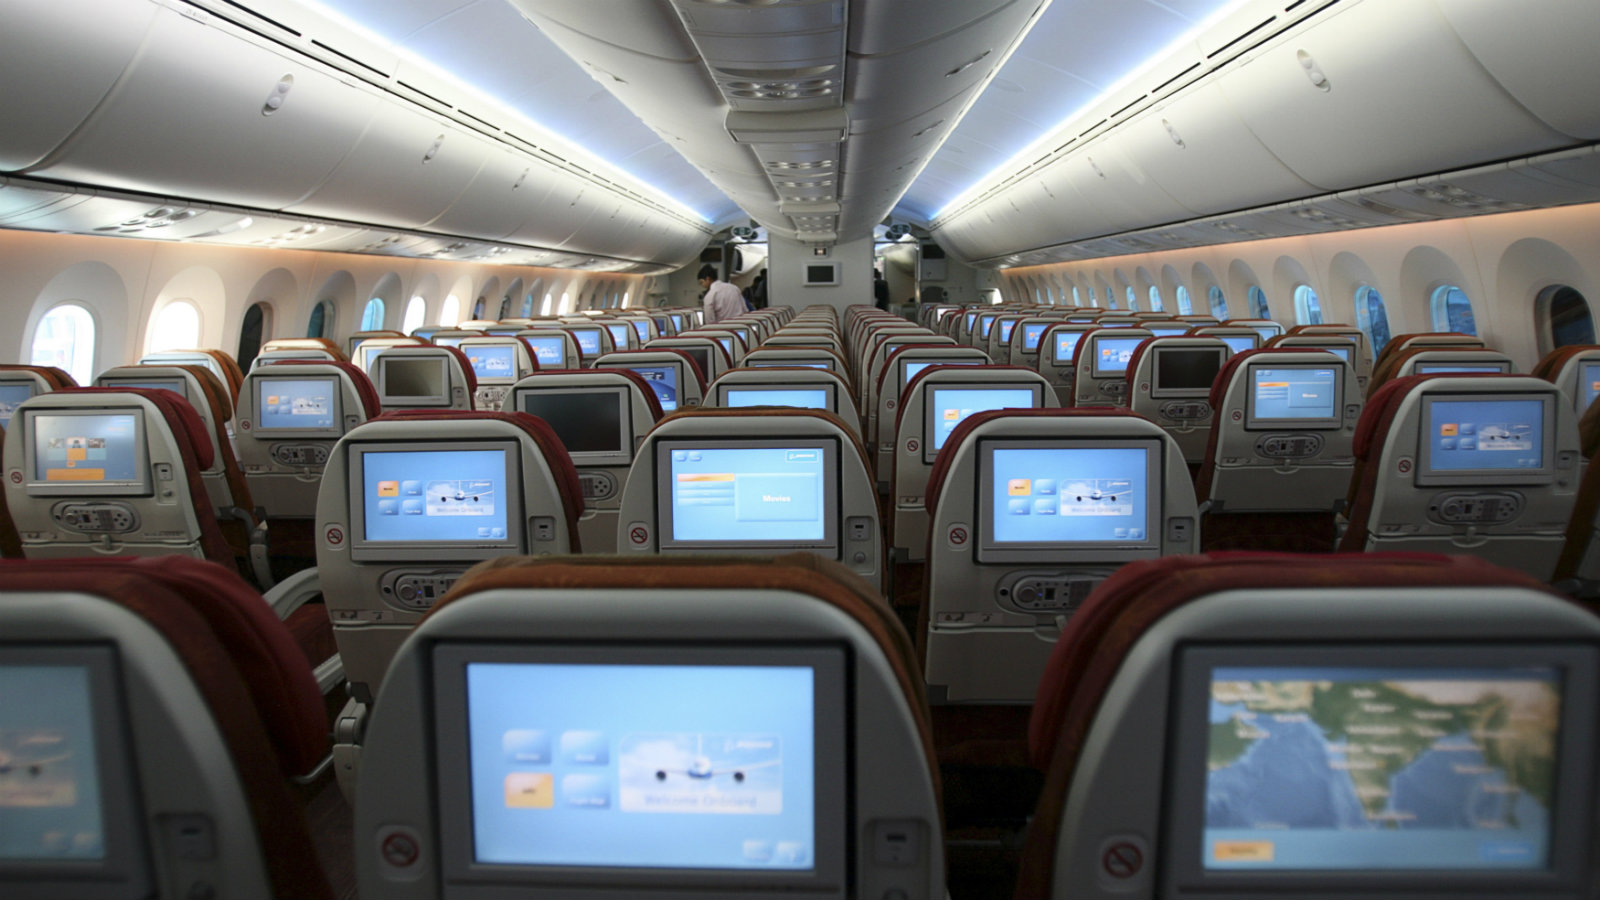 The dreaded destination: why foreign flight attendants dislike travelling to and from India